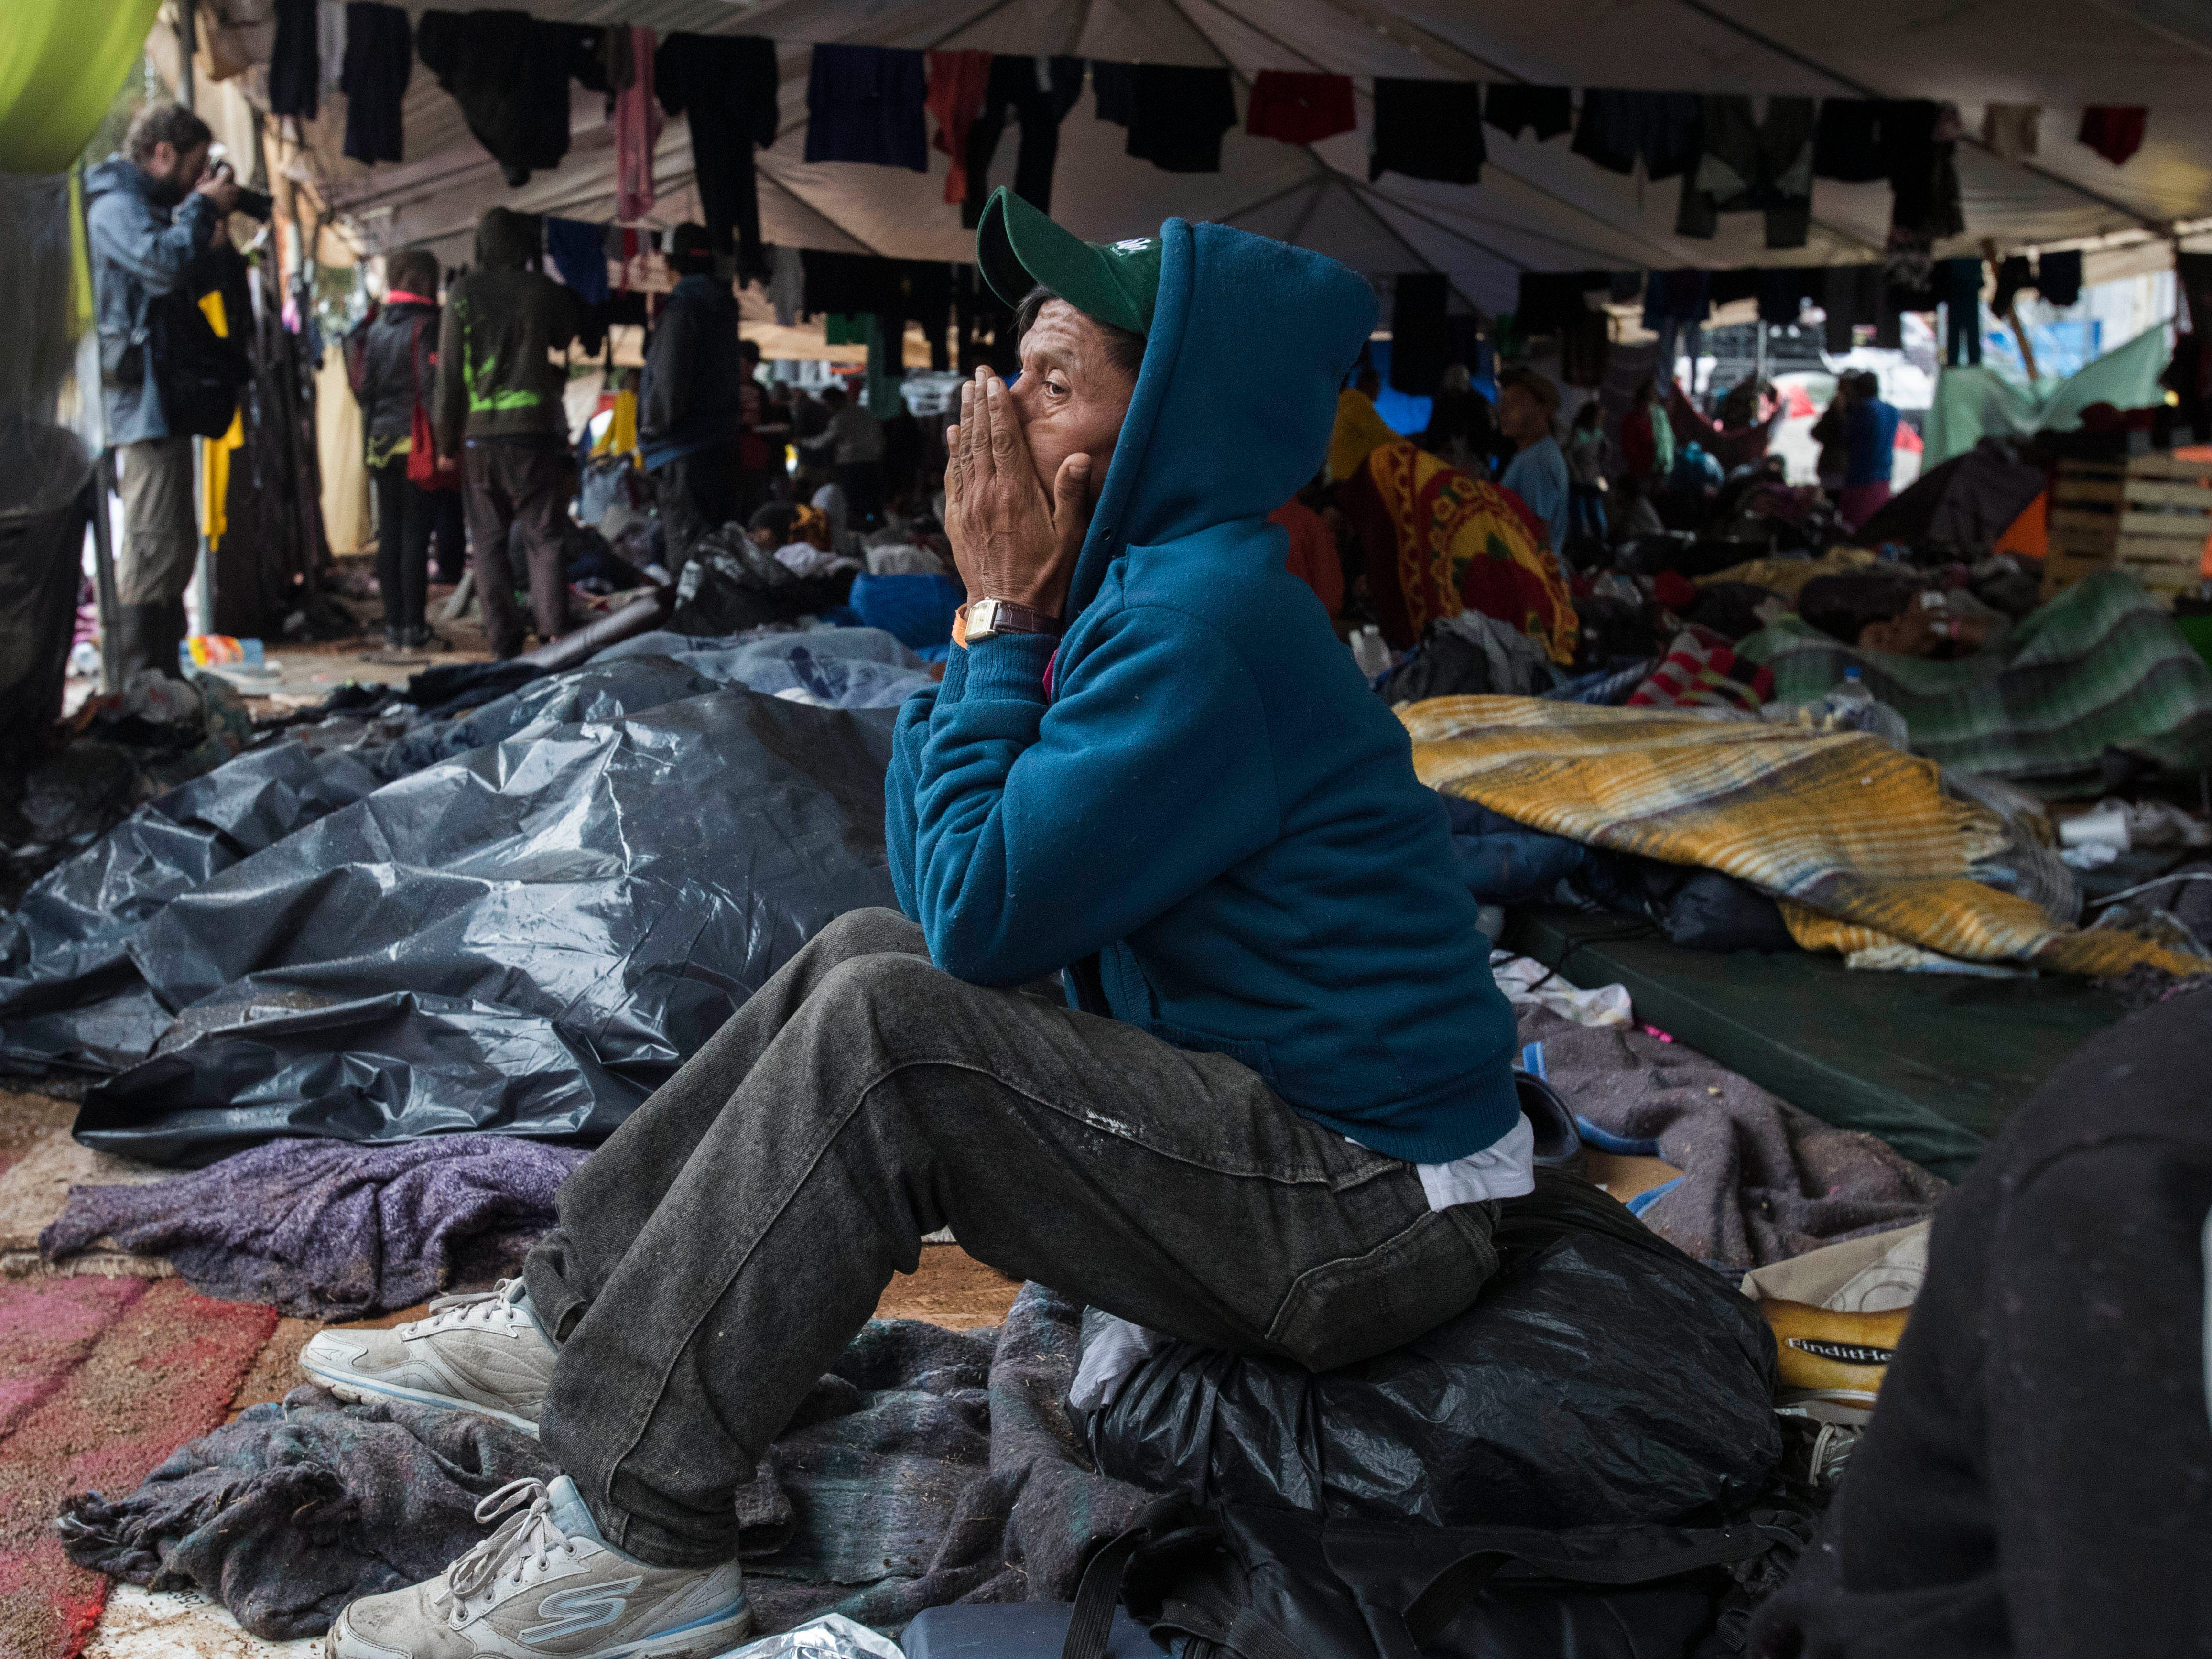 A migrant man from El Salvador contemplates his situation at the Benito Juarez sports complex in Tijuana, Mexico on Nov. 29, 2018.